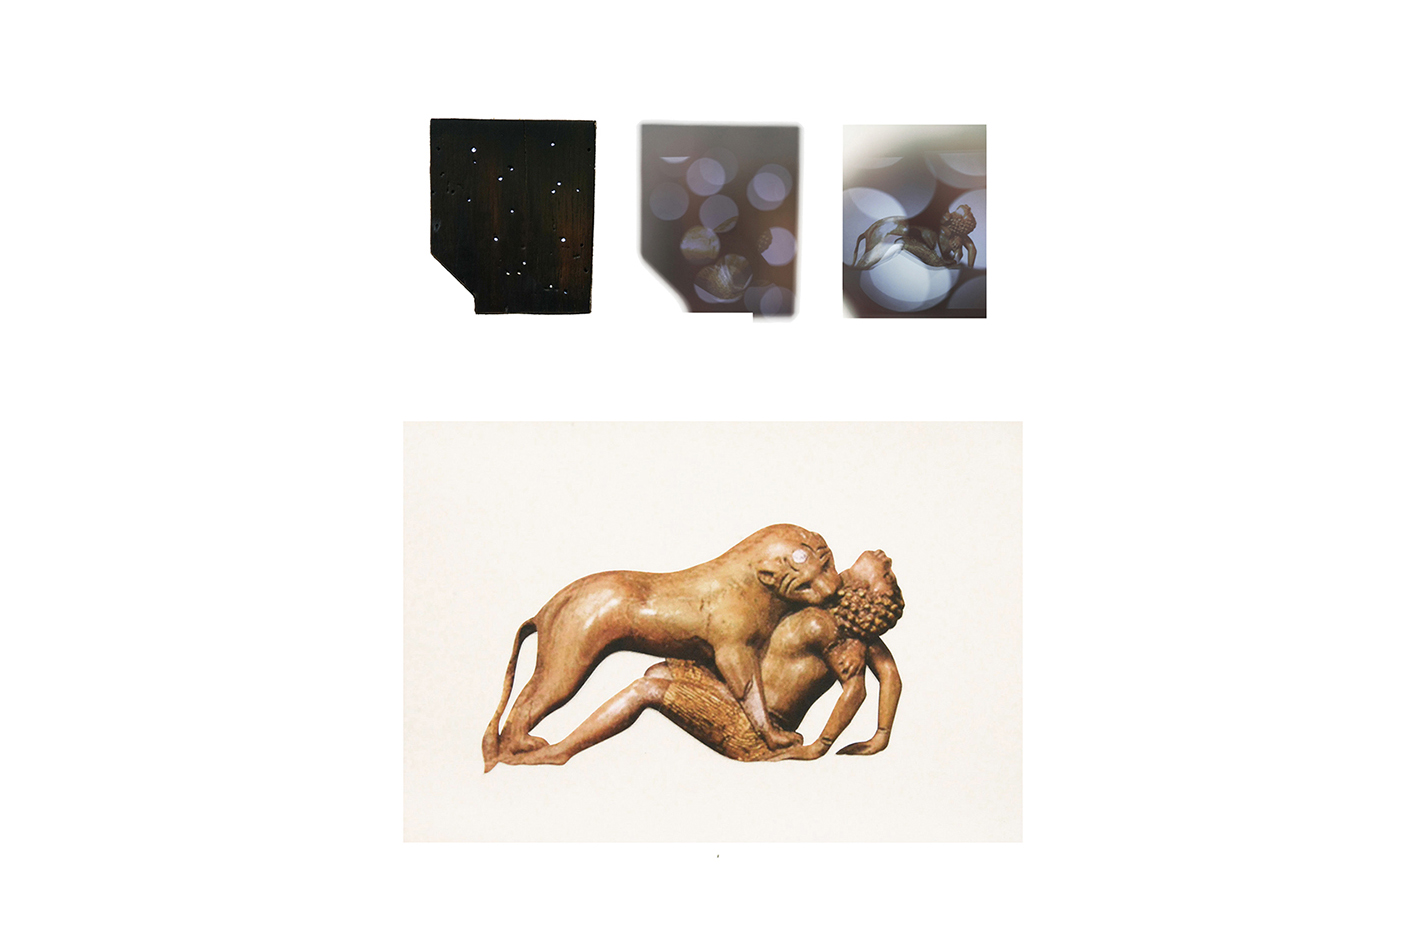 Specious-Species  - Installation.  2018  Woodworm lens Lightbox, acetate print of Phoenician carving of 'A lioness devouring boy'